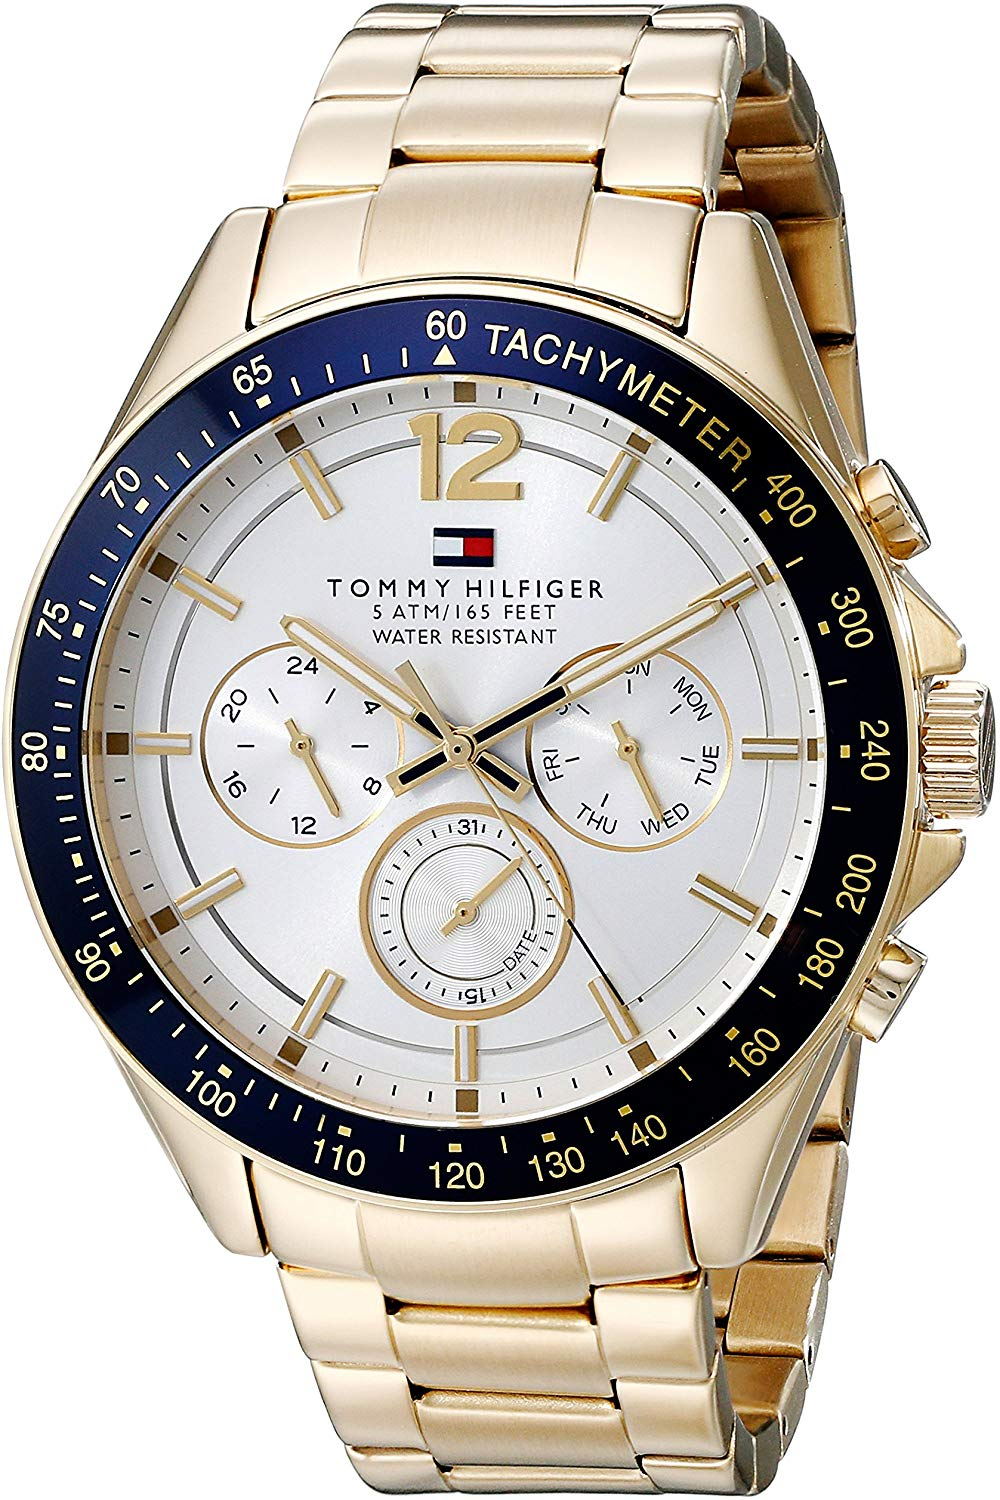 Tommy Hilfiger TH1791226 Watch